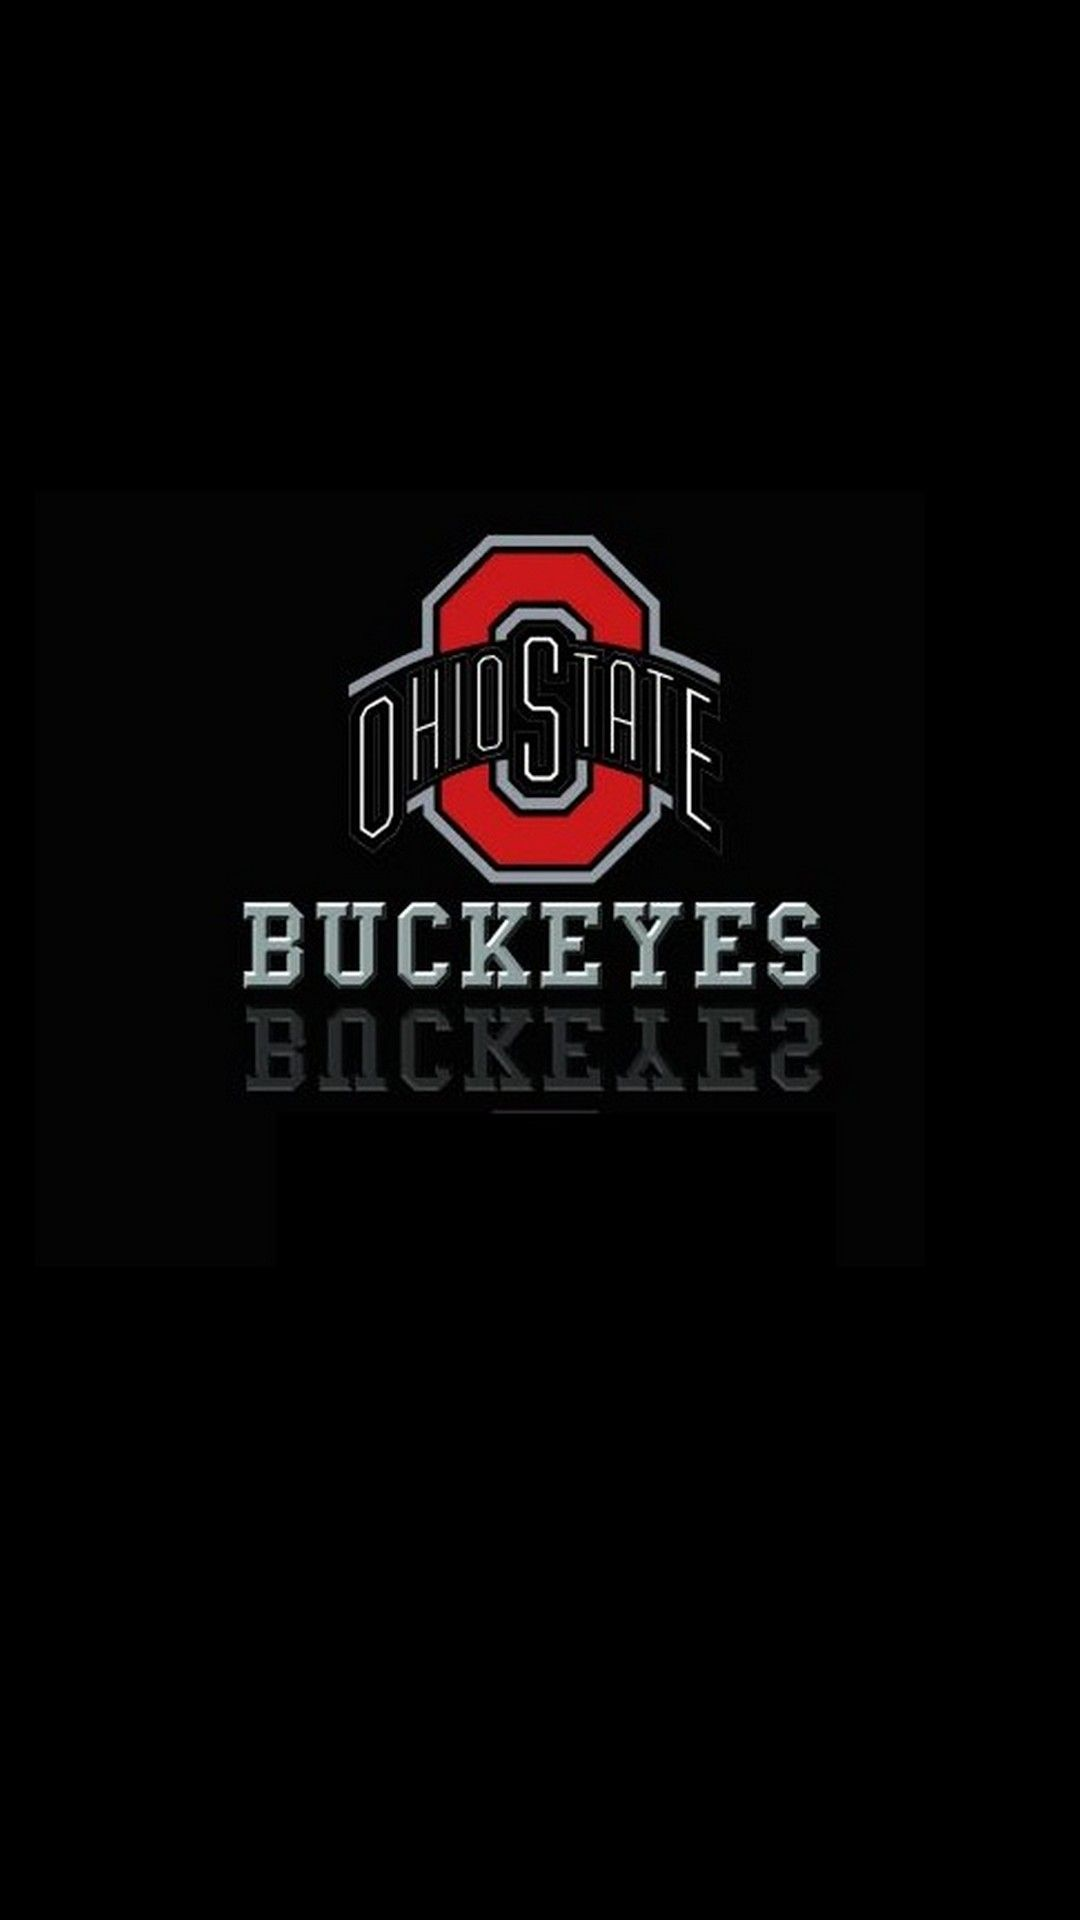 Cool Ohio State Wallpaper Ios On High Quality Wallpaper On Snowman Wallpapers Com In 2020 Ohio State Buckeyes Quotes Ohio State Buckeyes Football Ohio State Wallpaper